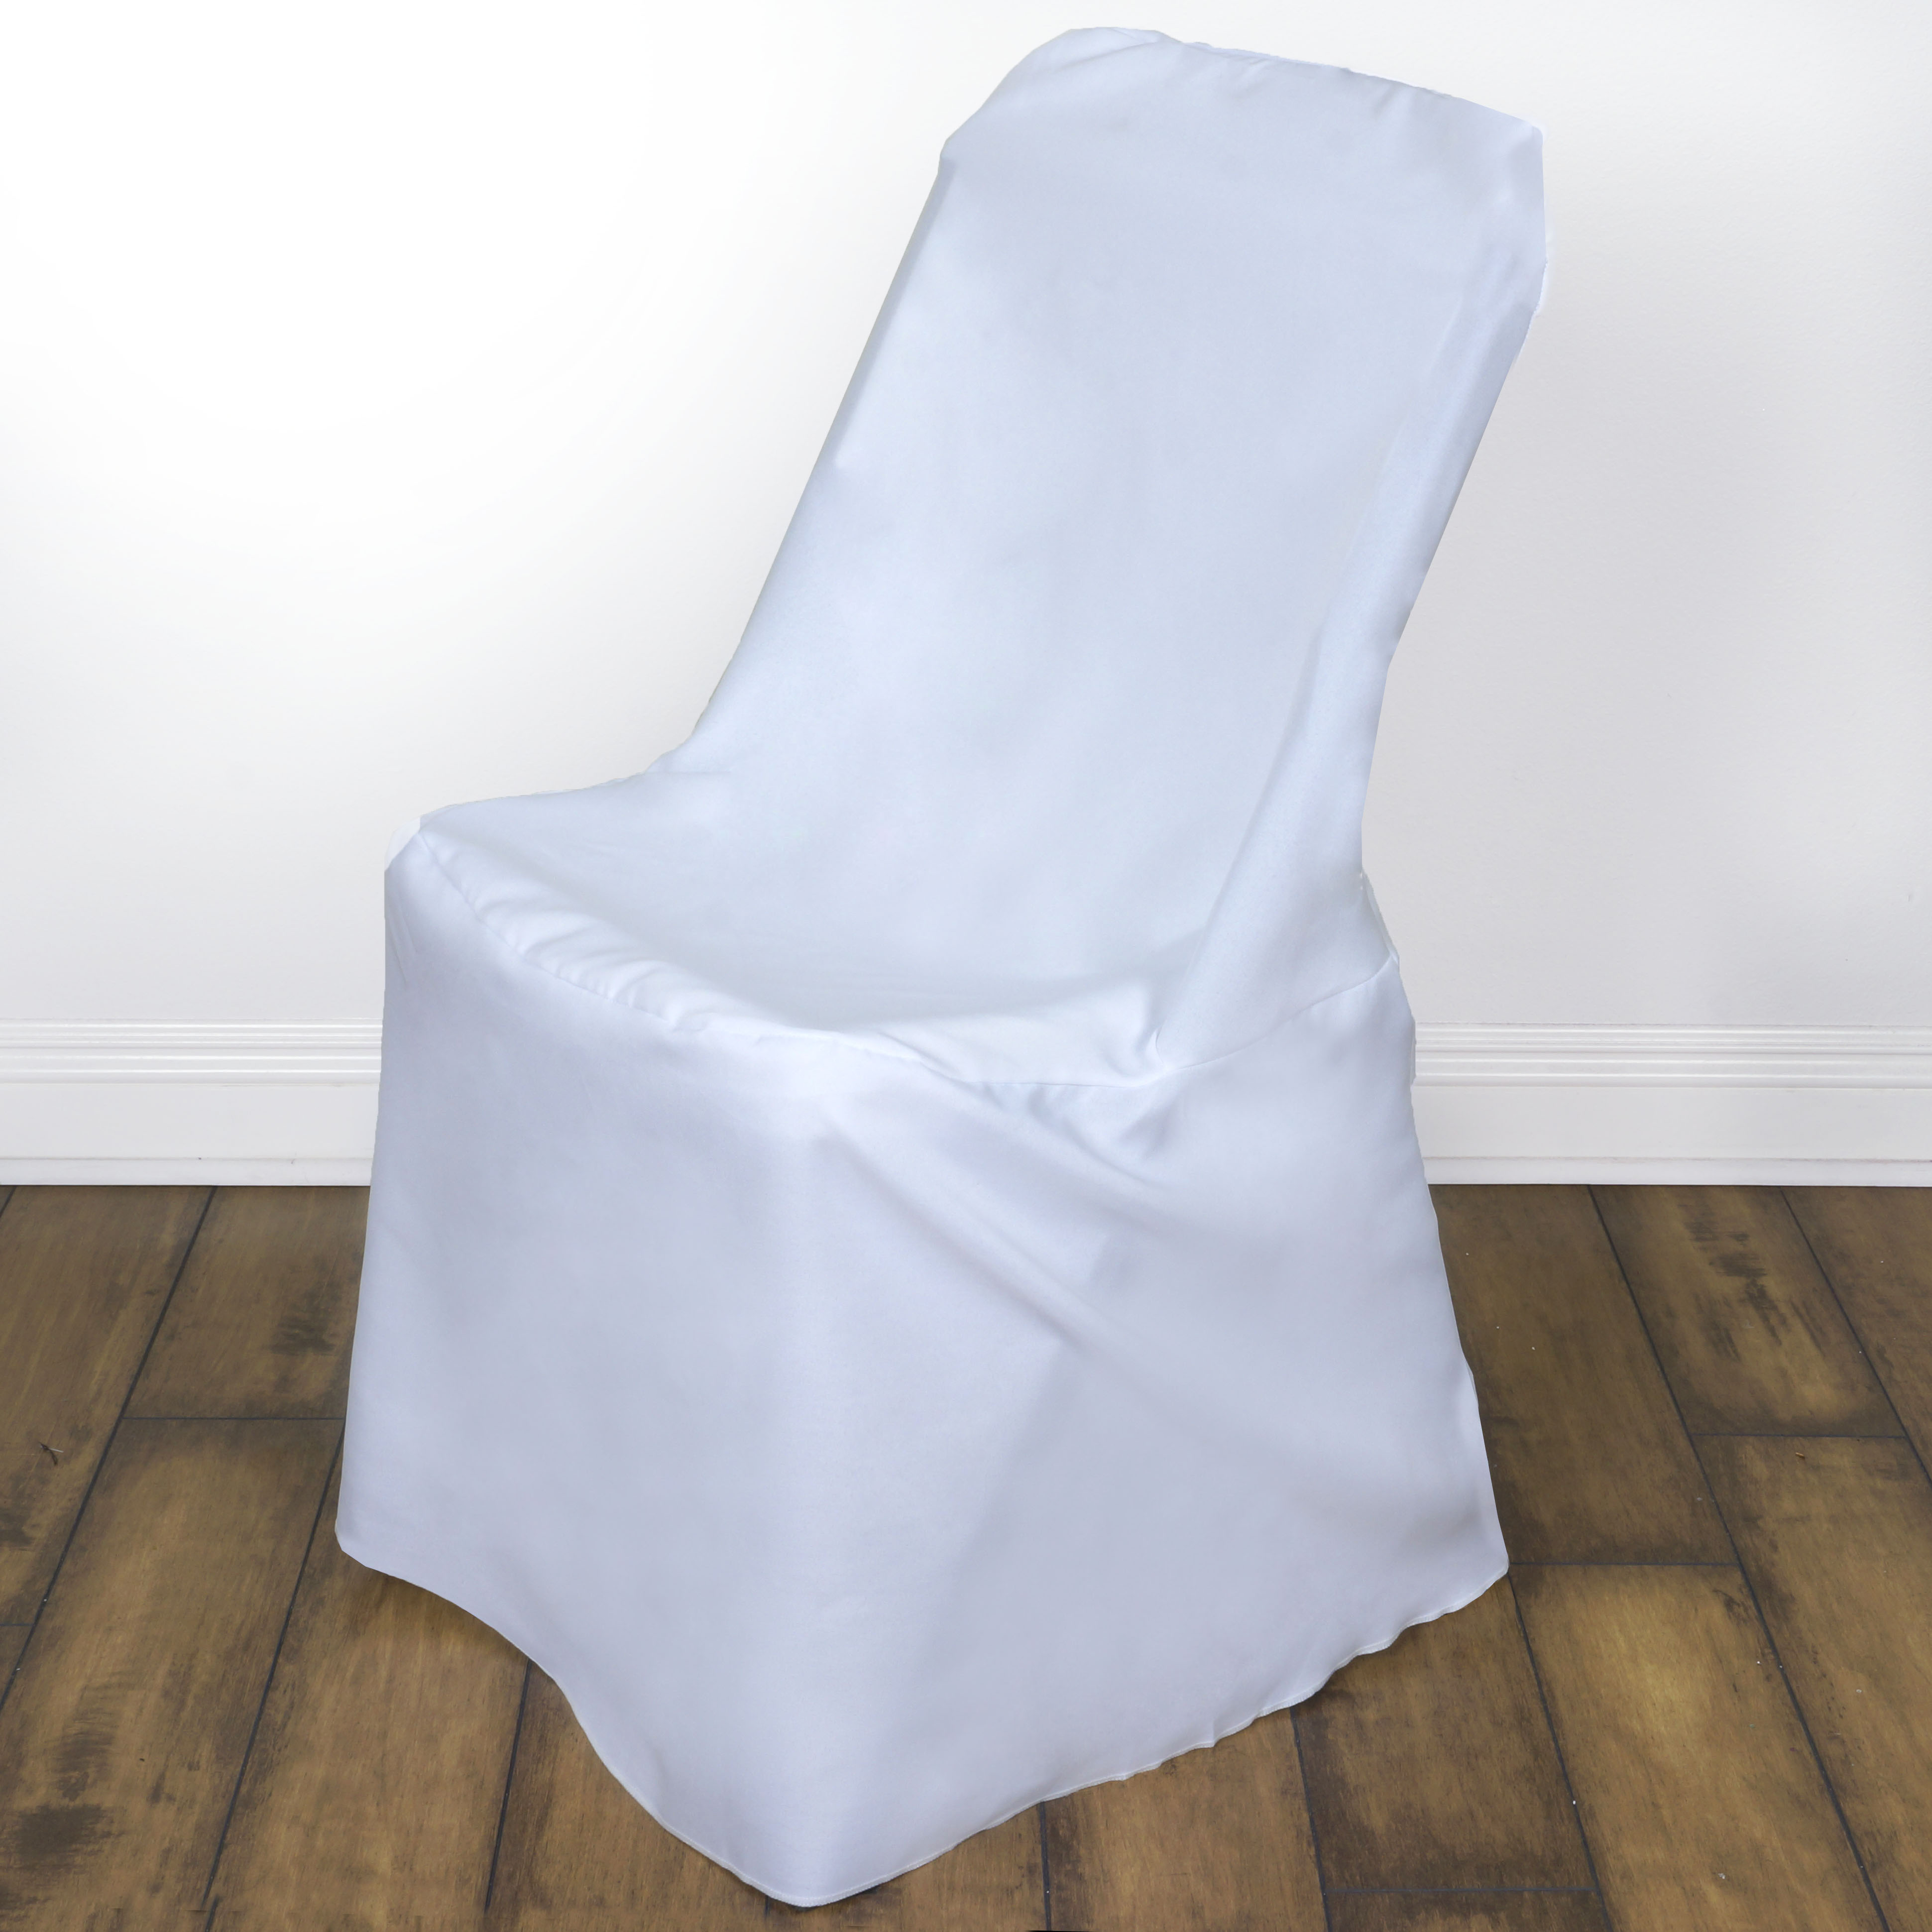 Fabulous Details About White Lifetime Folding Chair Cover Wedding Party Catering Decorations Camellatalisay Diy Chair Ideas Camellatalisaycom